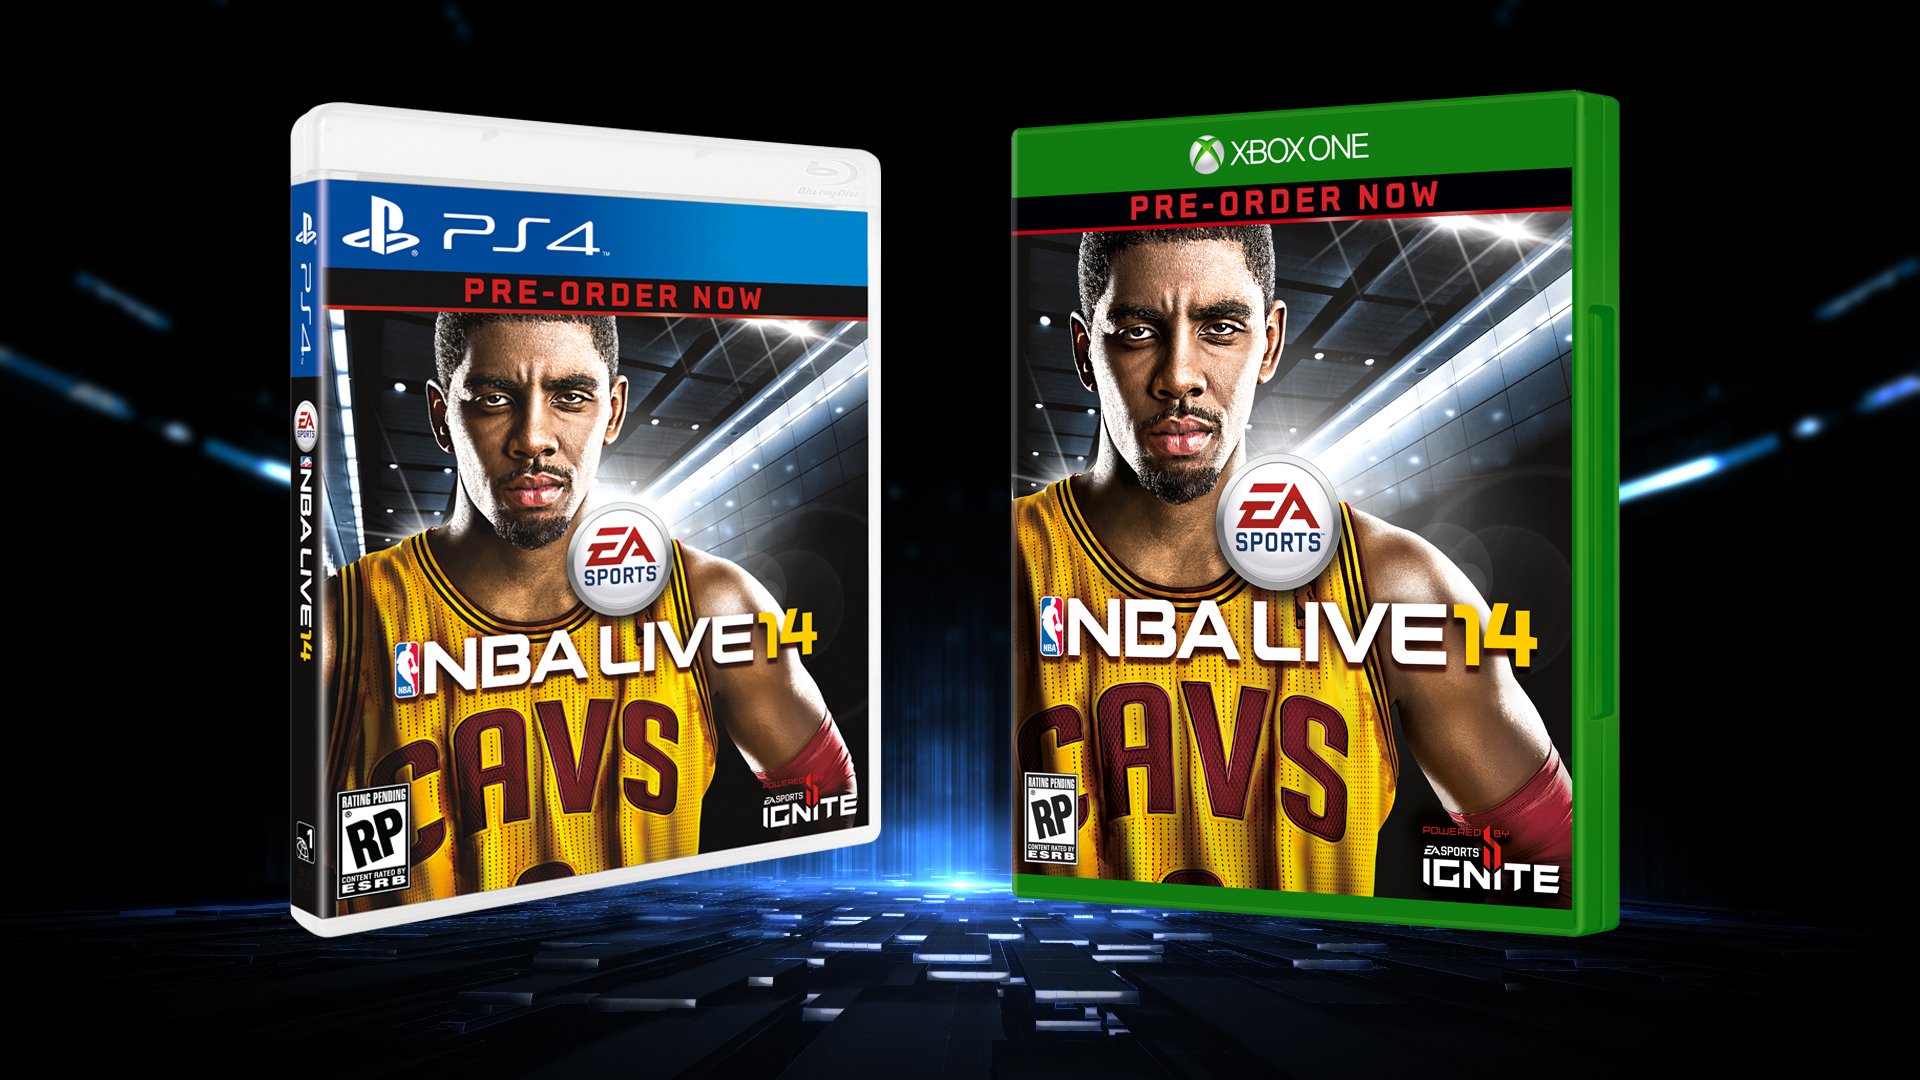 NBA LIVE 14 PS4 and Xbox One box art (Graphic: Business Wire)